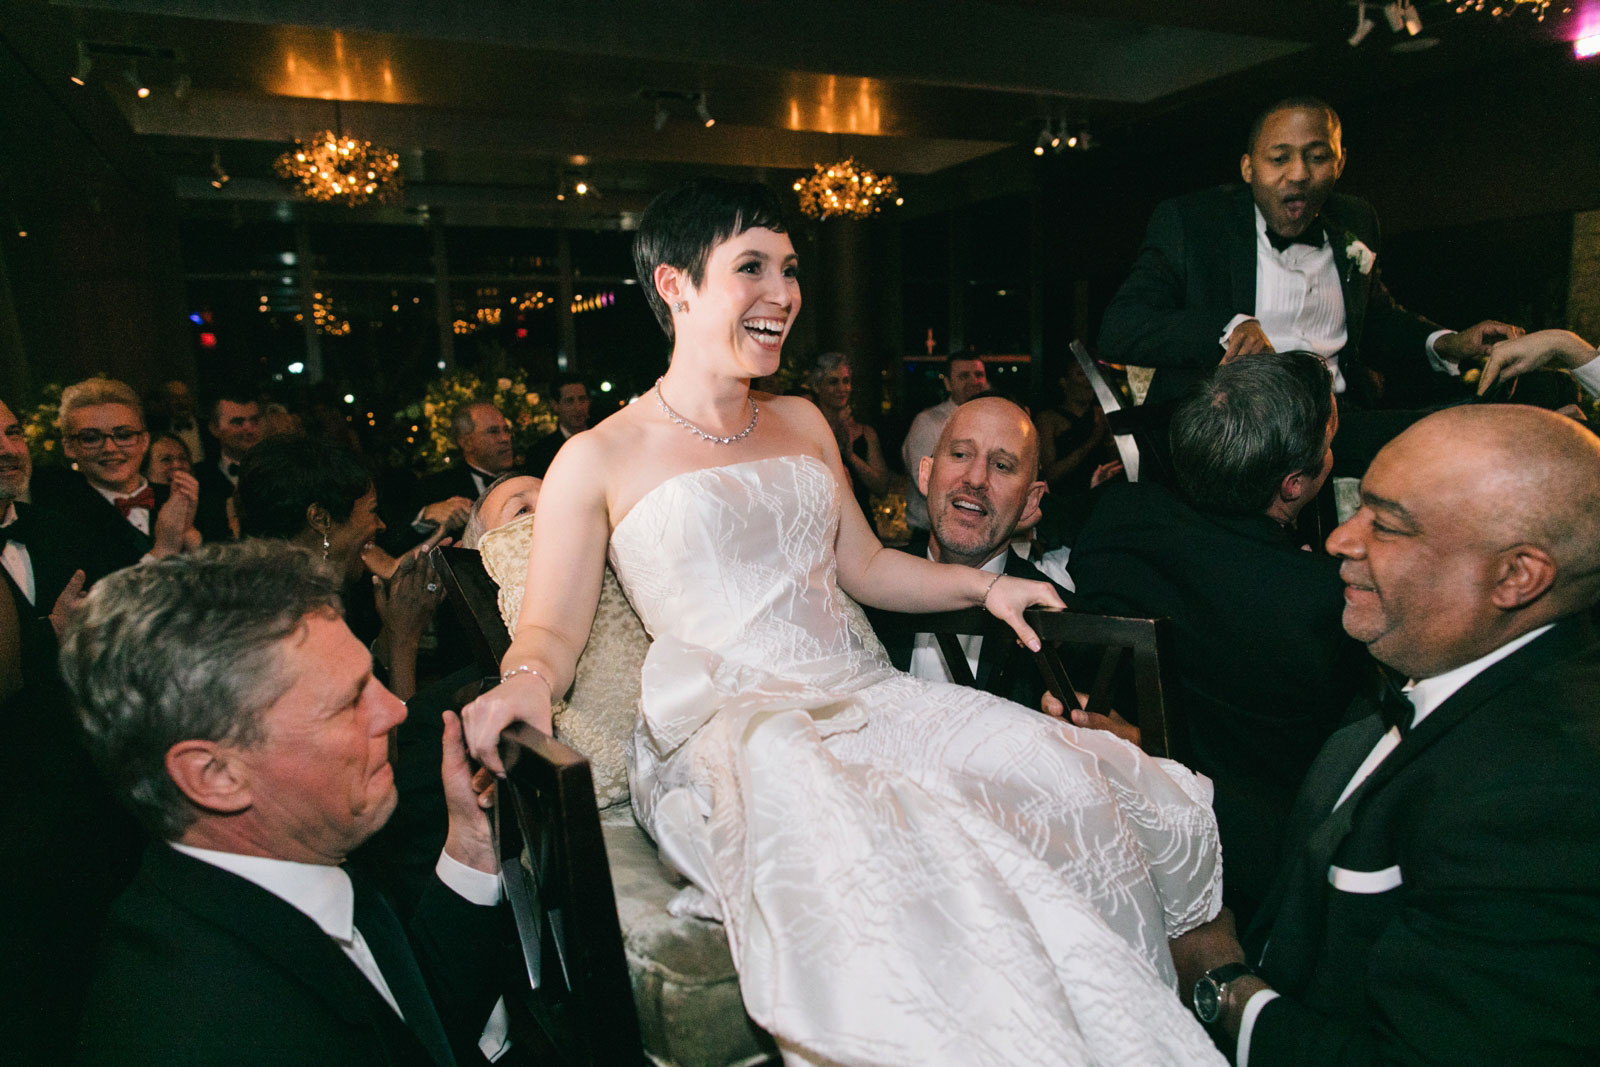 Bride and groom laugh as they are lifted up in chairs during Hora at multicultural wedding reception